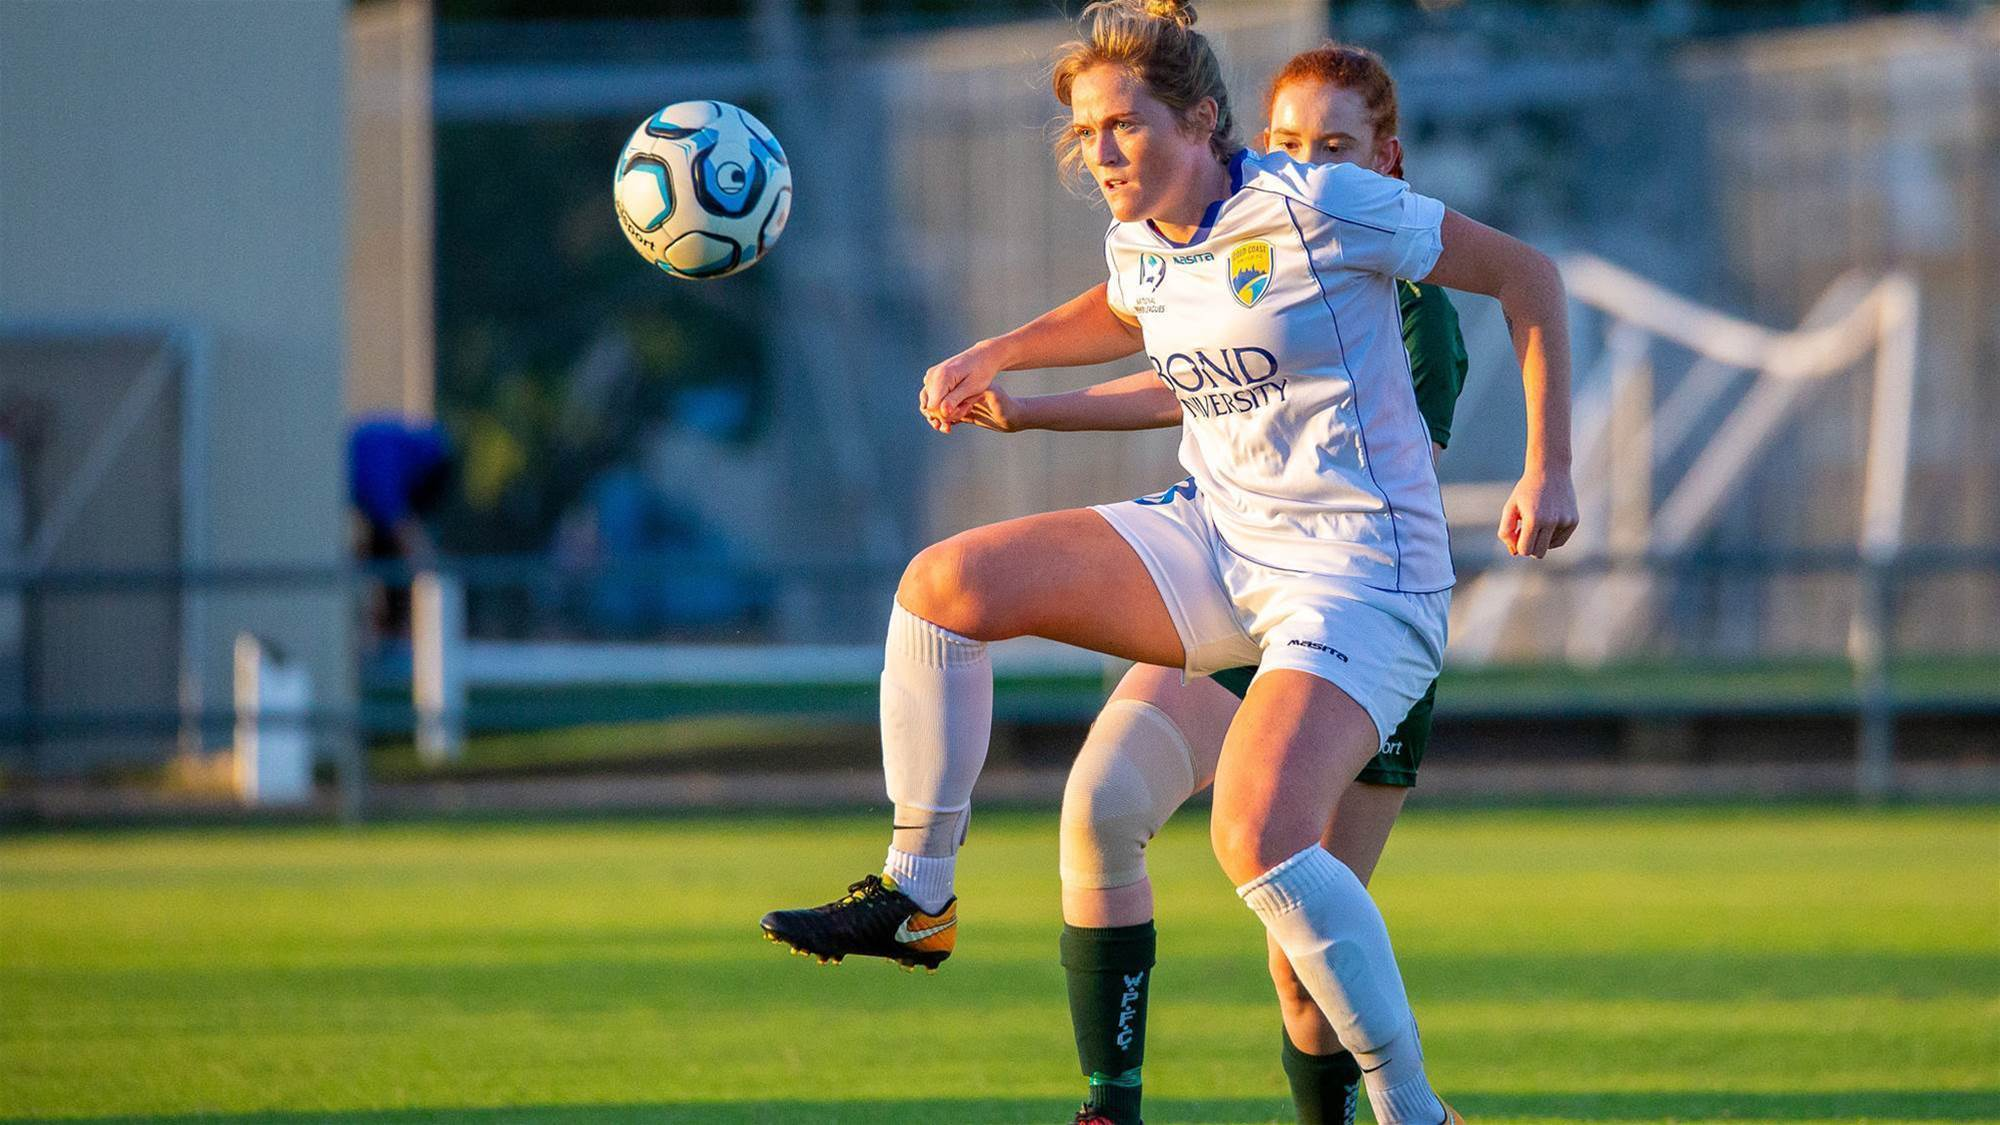 Fearless striker looking to W-League